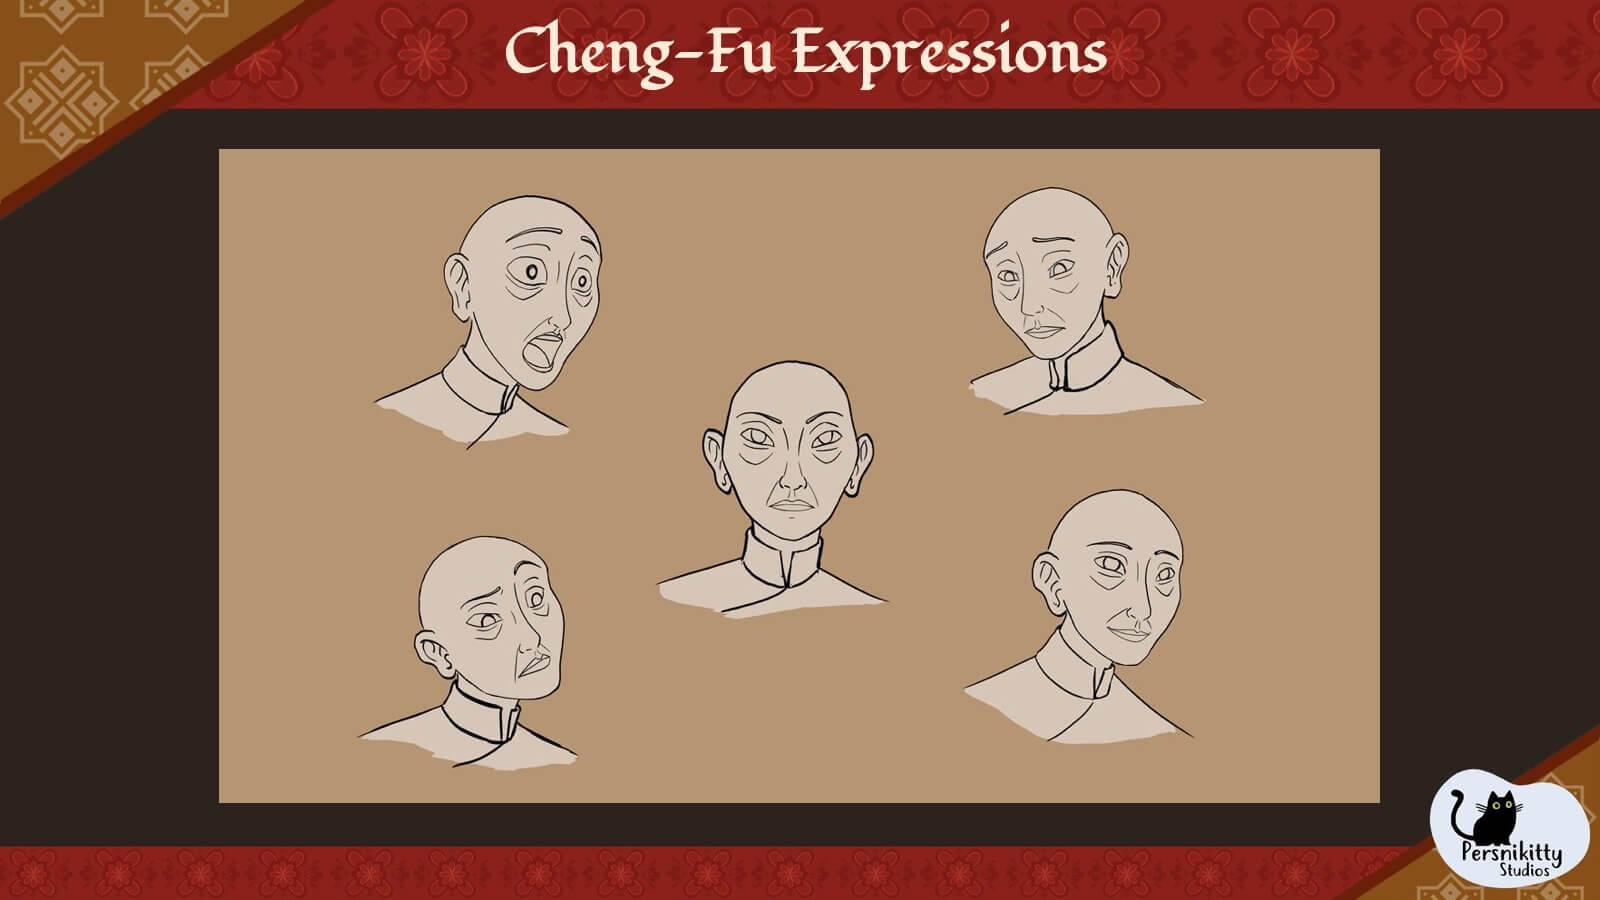 A slide displaying a variety of facial expressions for Master Cheng-Fu.